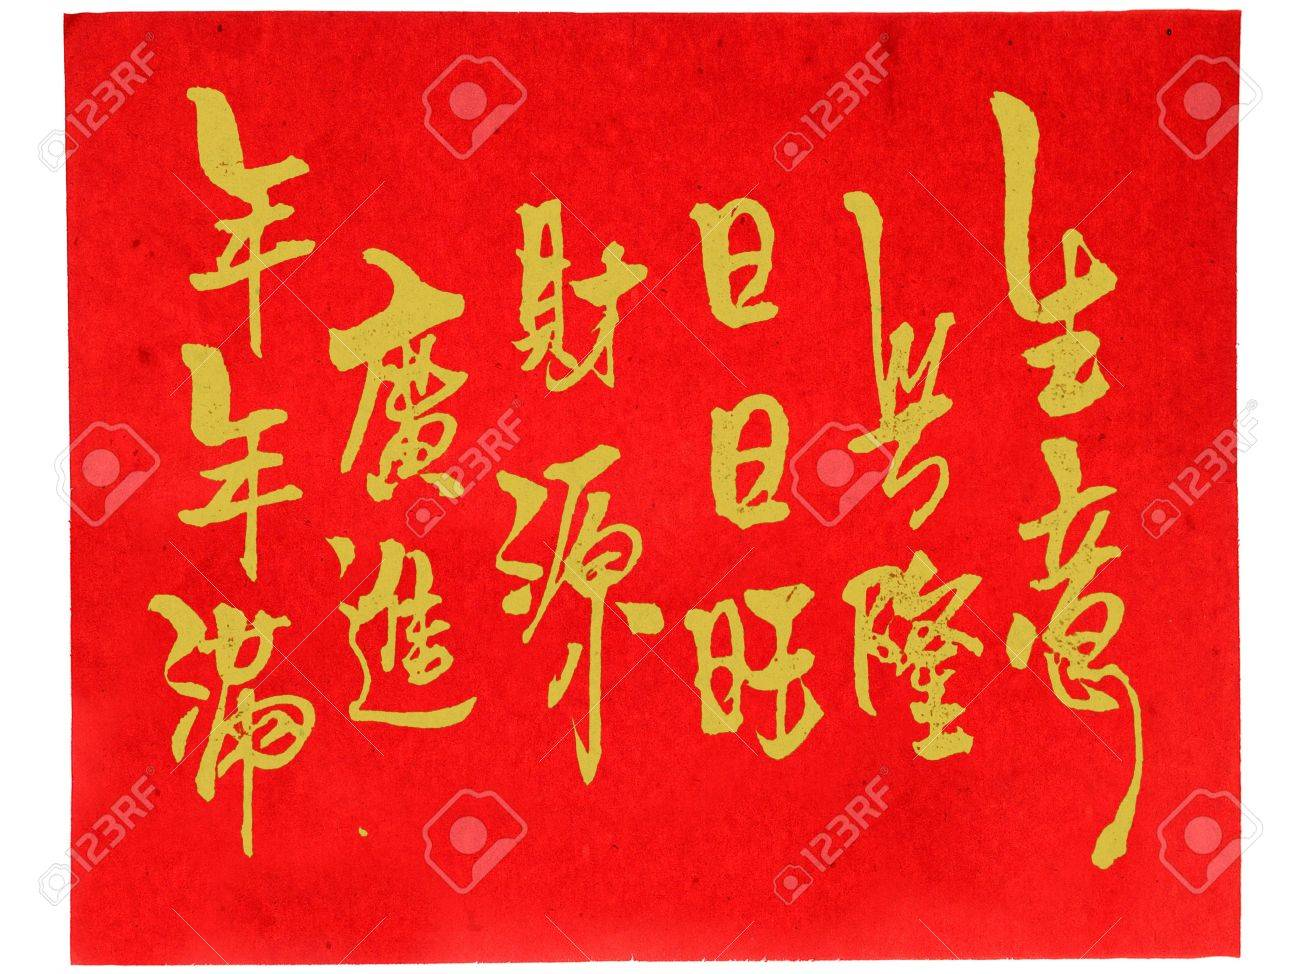 Chinese Calligraphy On Red Paper Contain Meaning For Chinese.. Stock ...